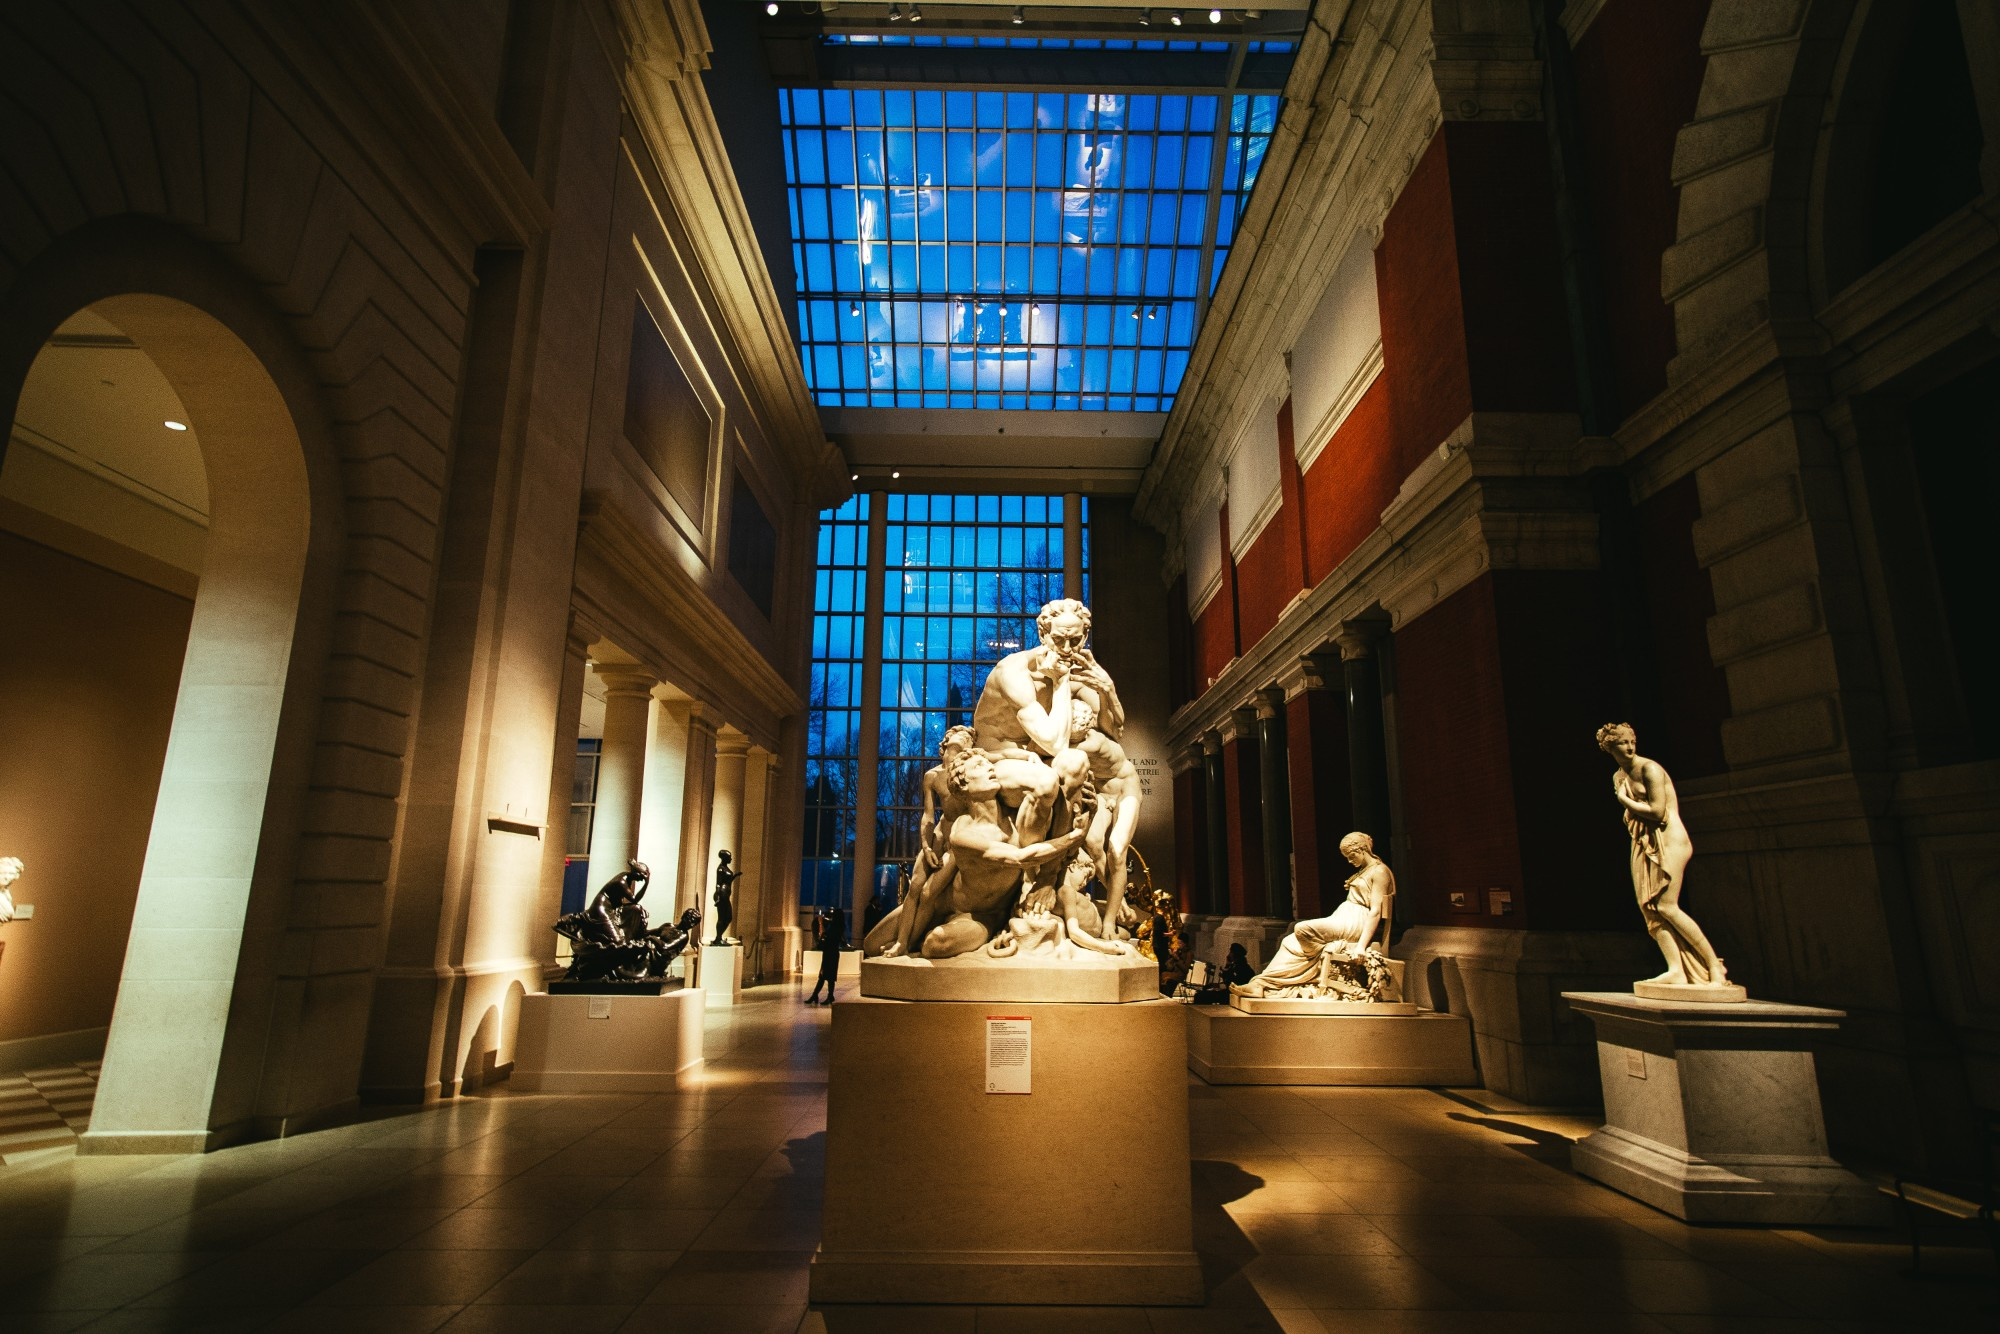 Statues in the Greek wing at the Met